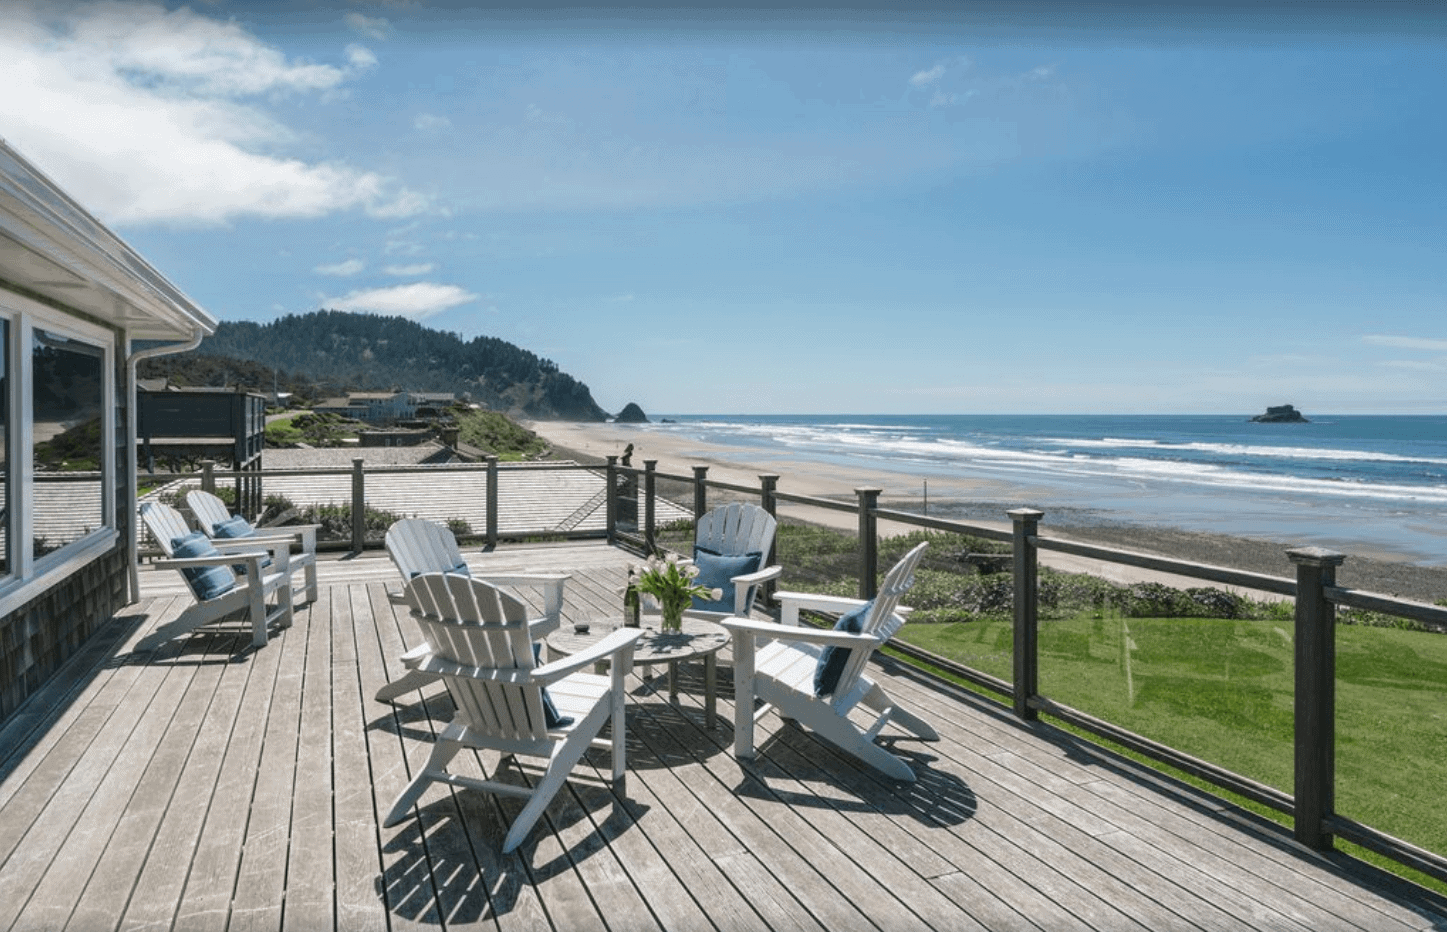 21 Best Vrbo Rentals On The Oregon Coast Territory Supply Then this fabulous, funky lakefront home that sleeps four is for you, with its retro orange and green furniture and groovy sleeping loft. best vrbo rentals on the oregon coast